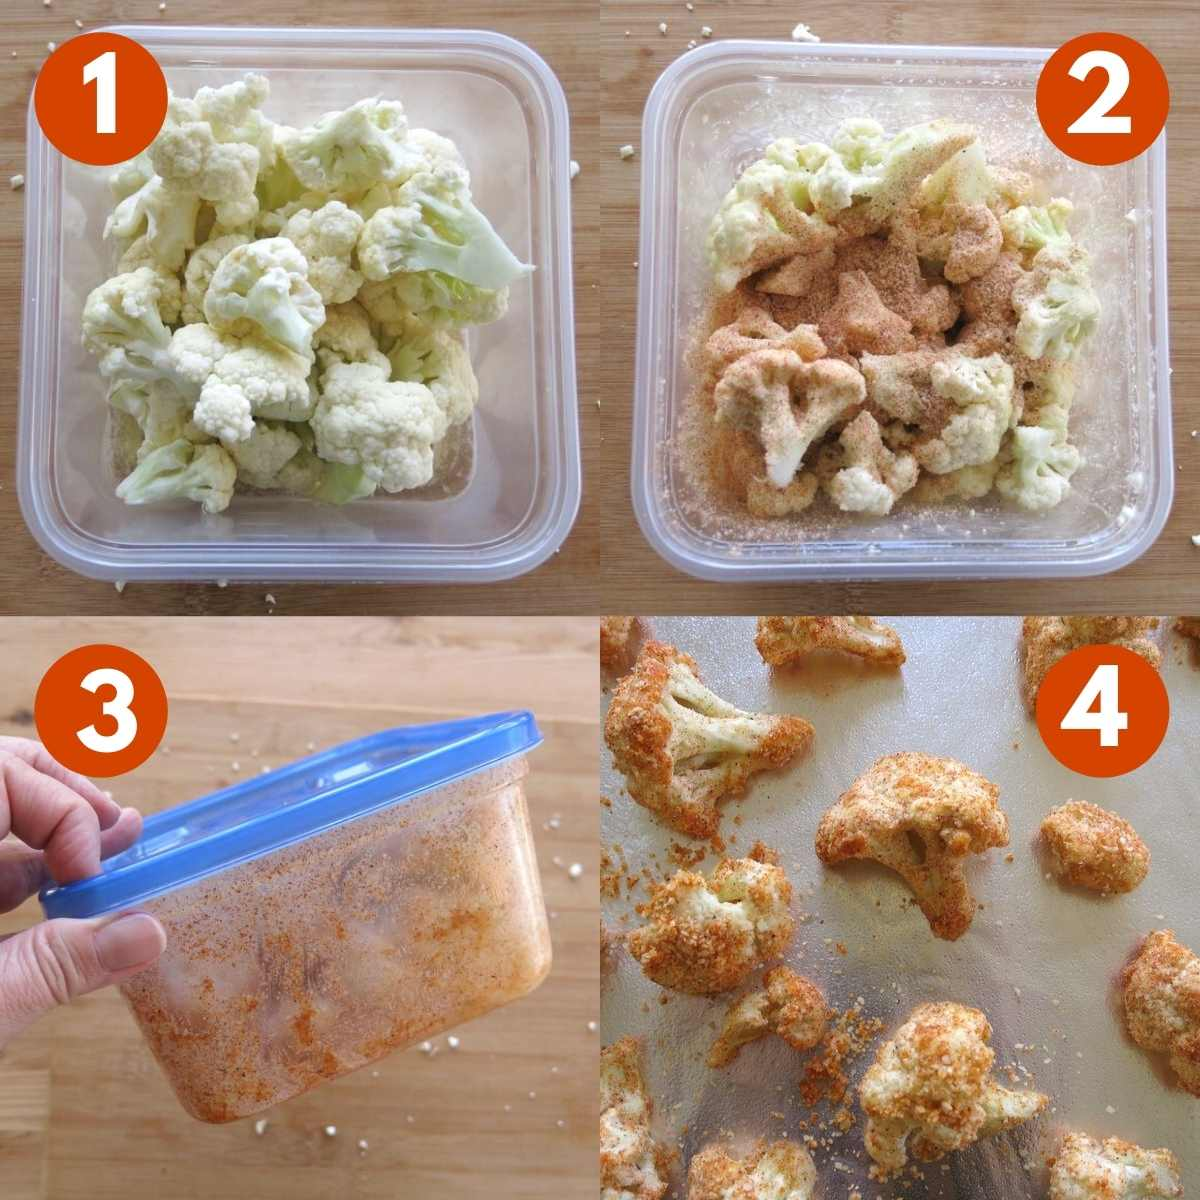 Breading Technique for cauliflower graphic with 4 steps labeled.